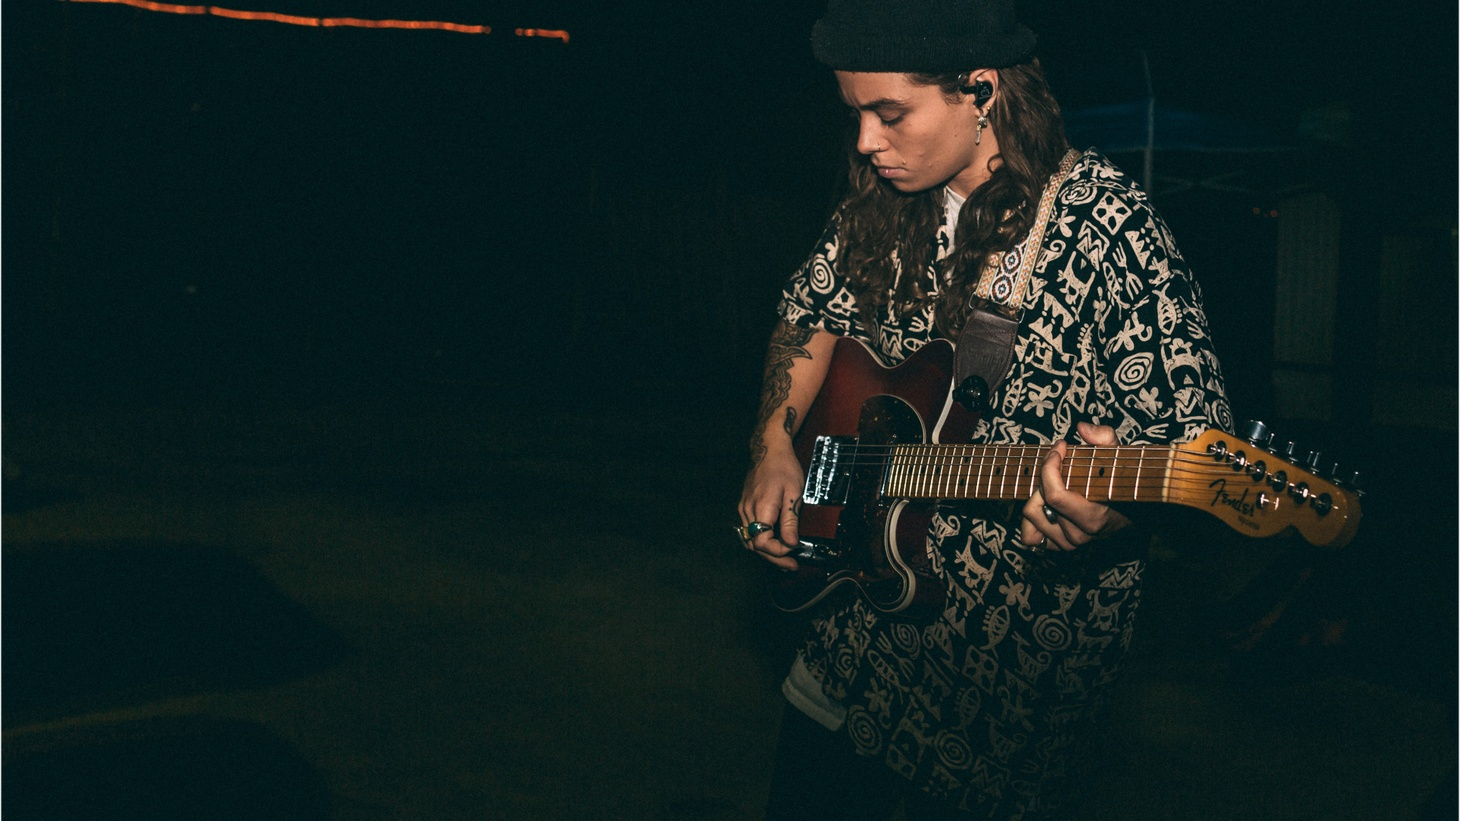 If you have a chance to listen to Tash Sultana's debut album, you'll hear all 15 of the instruments she played on the recording; from the pan flute to the loop pedals.